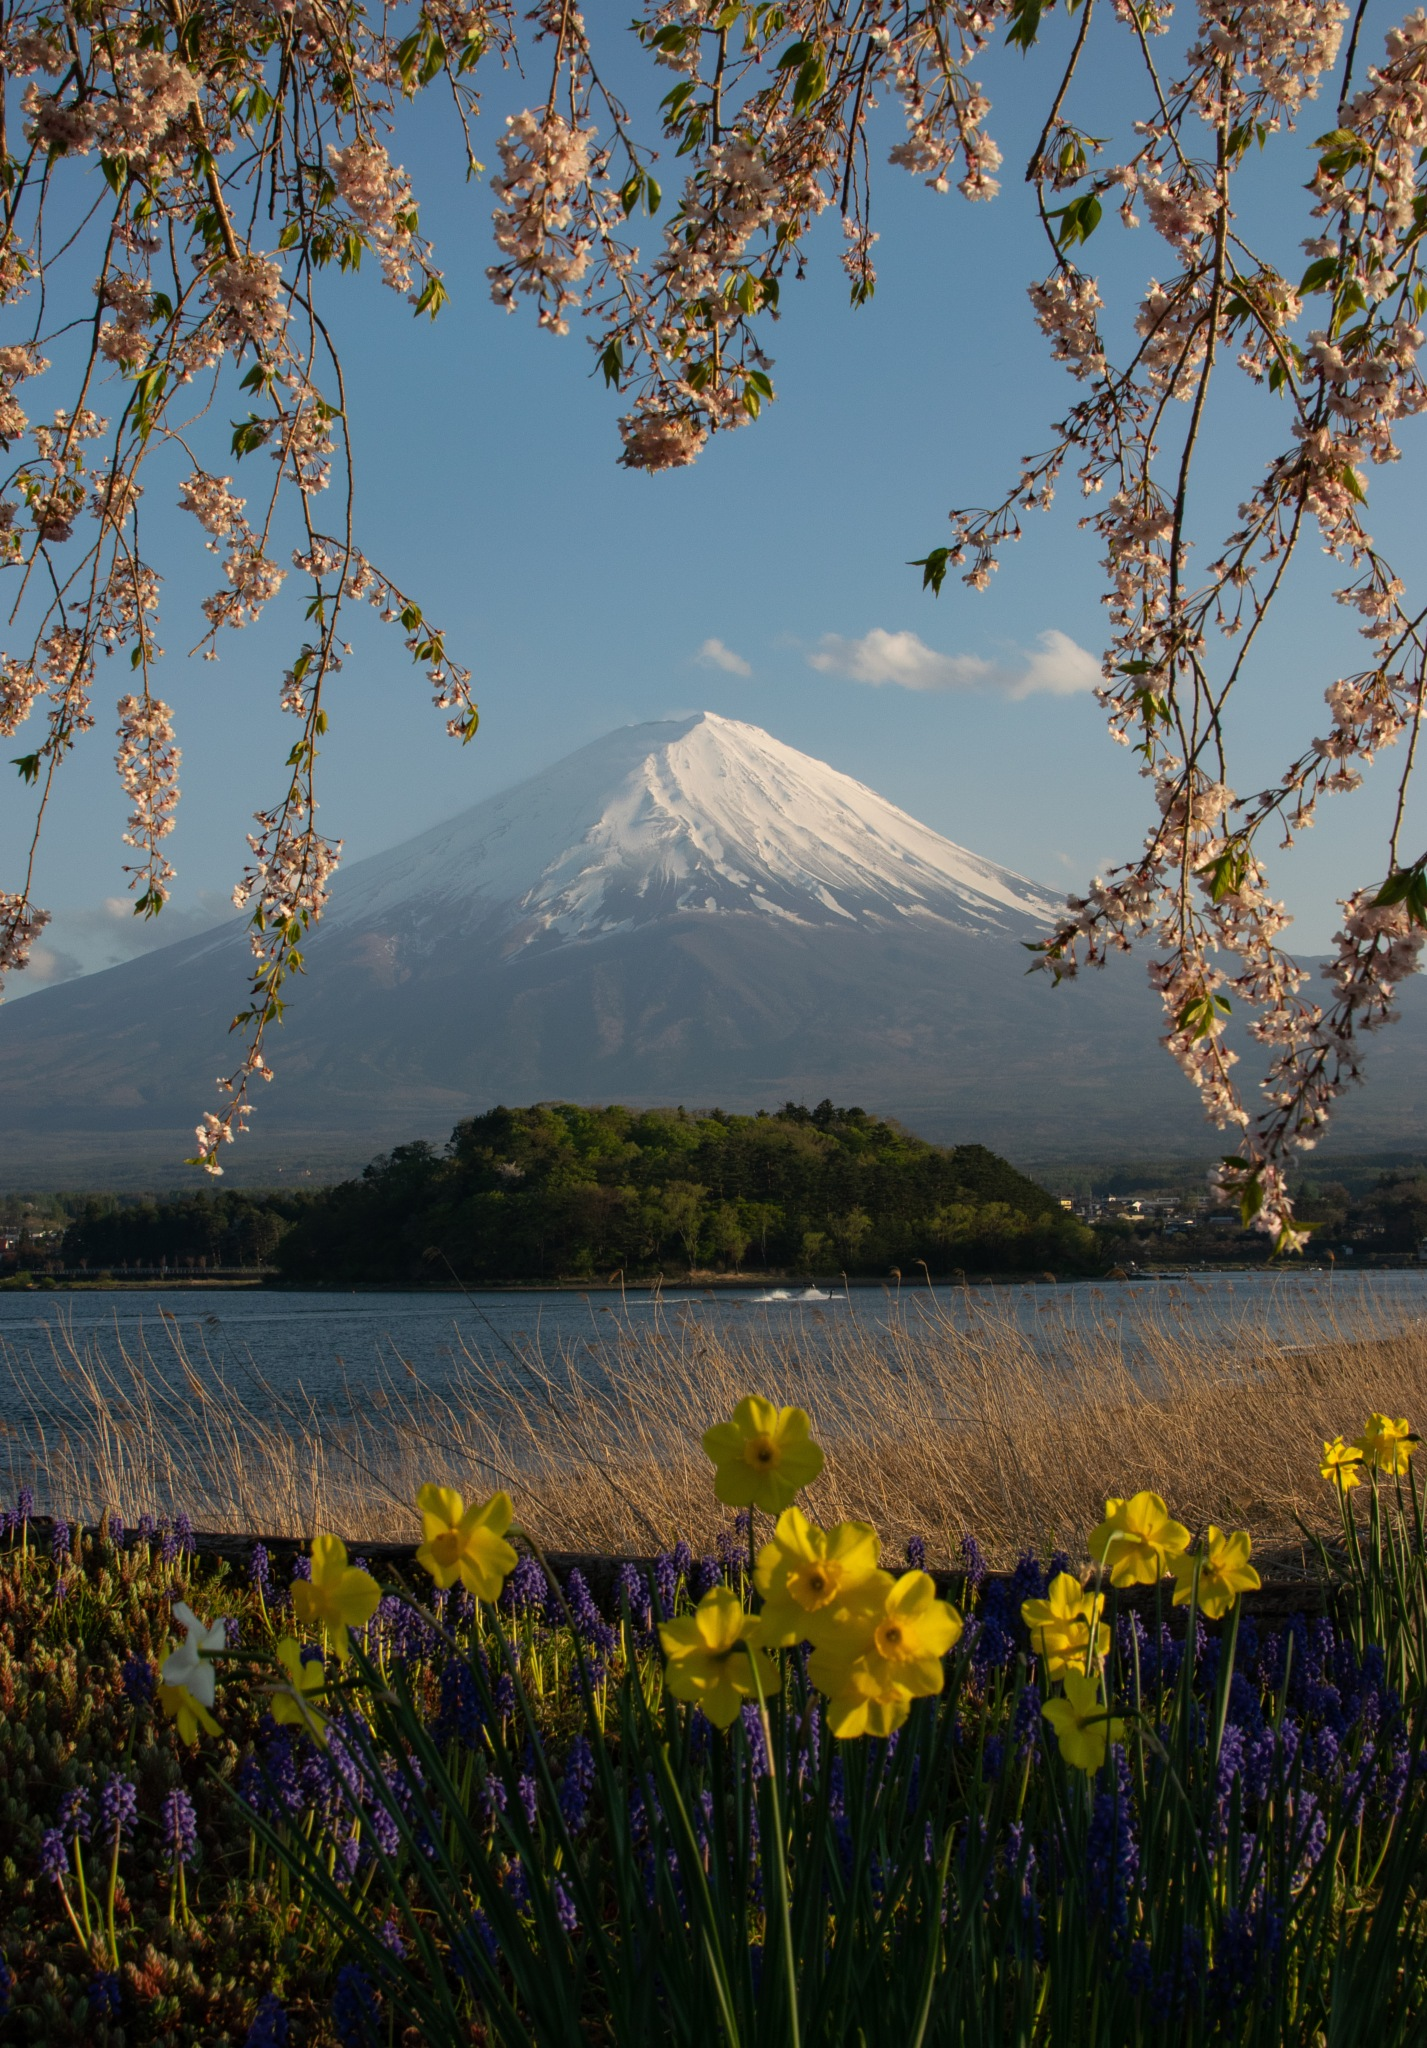 Mount Fuji and Flowers by Jose Miguel Moya Gonzalez